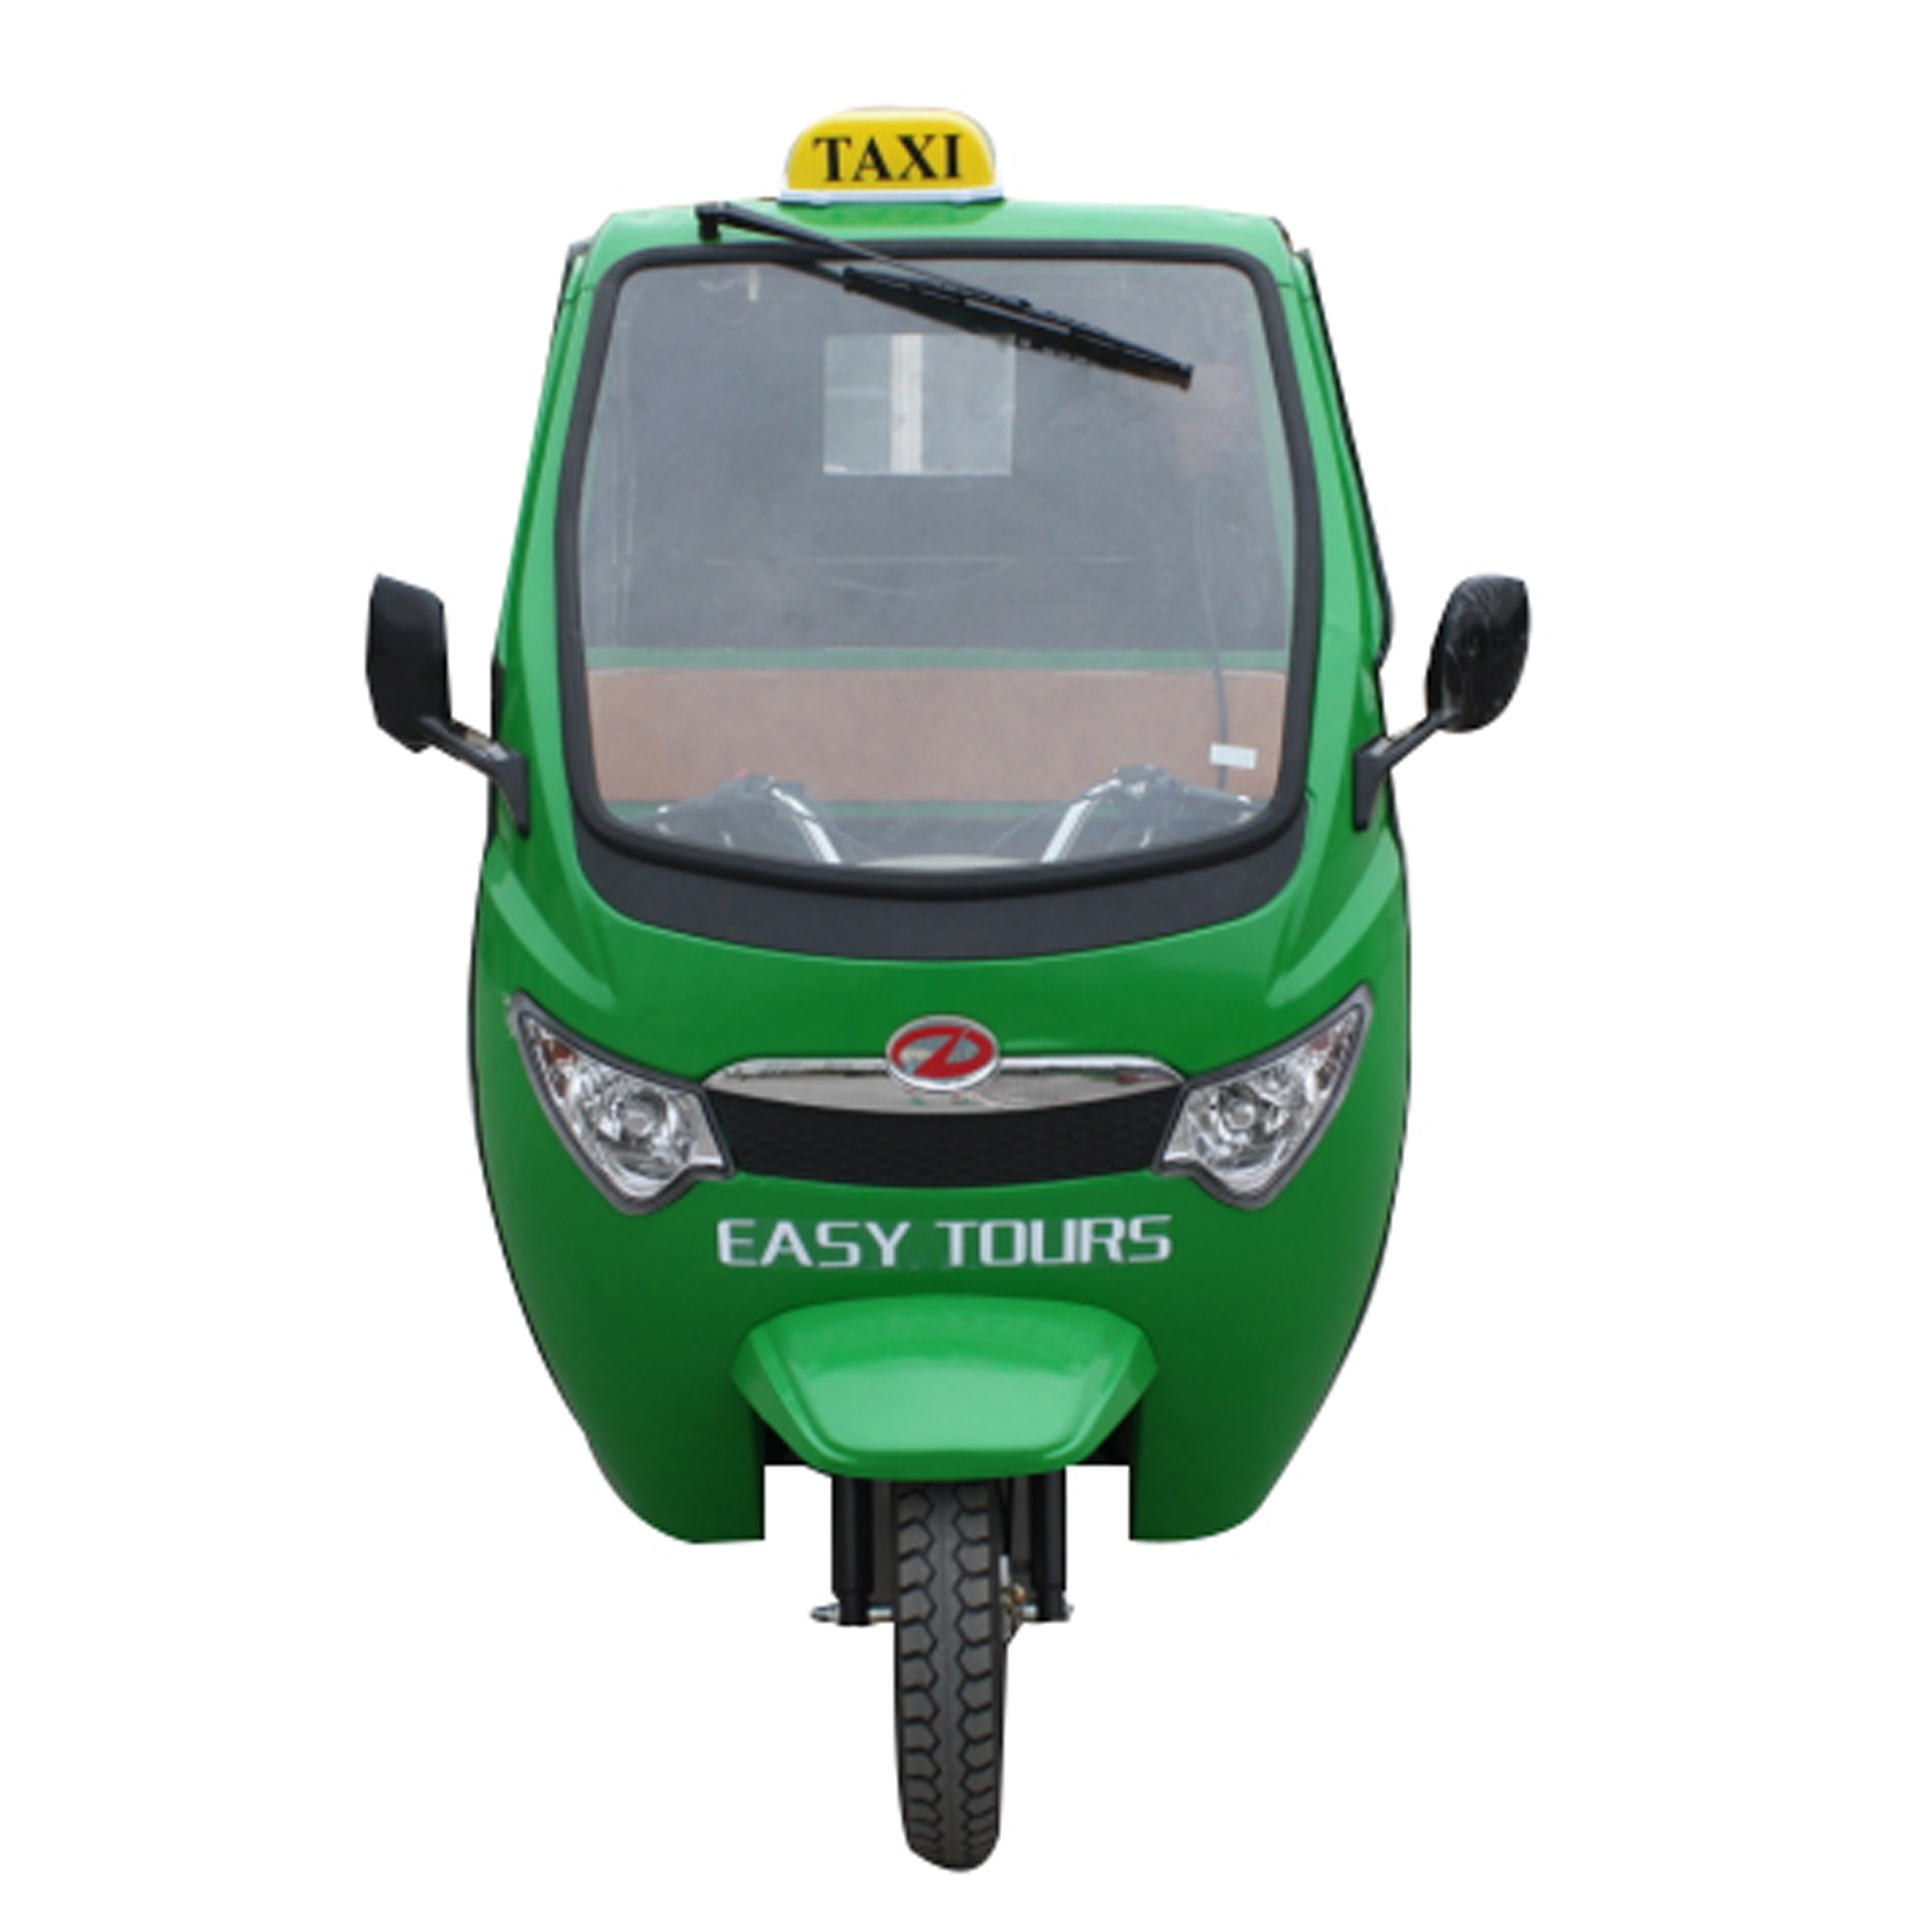 Auto Taxi 3 Wheeler Cng Tricycle View Bajaj Auto Taxi Tricycle Phoenix Product Details From Jinan Bodihao Mechanical Equipment Co Ltd On Alibaba Com